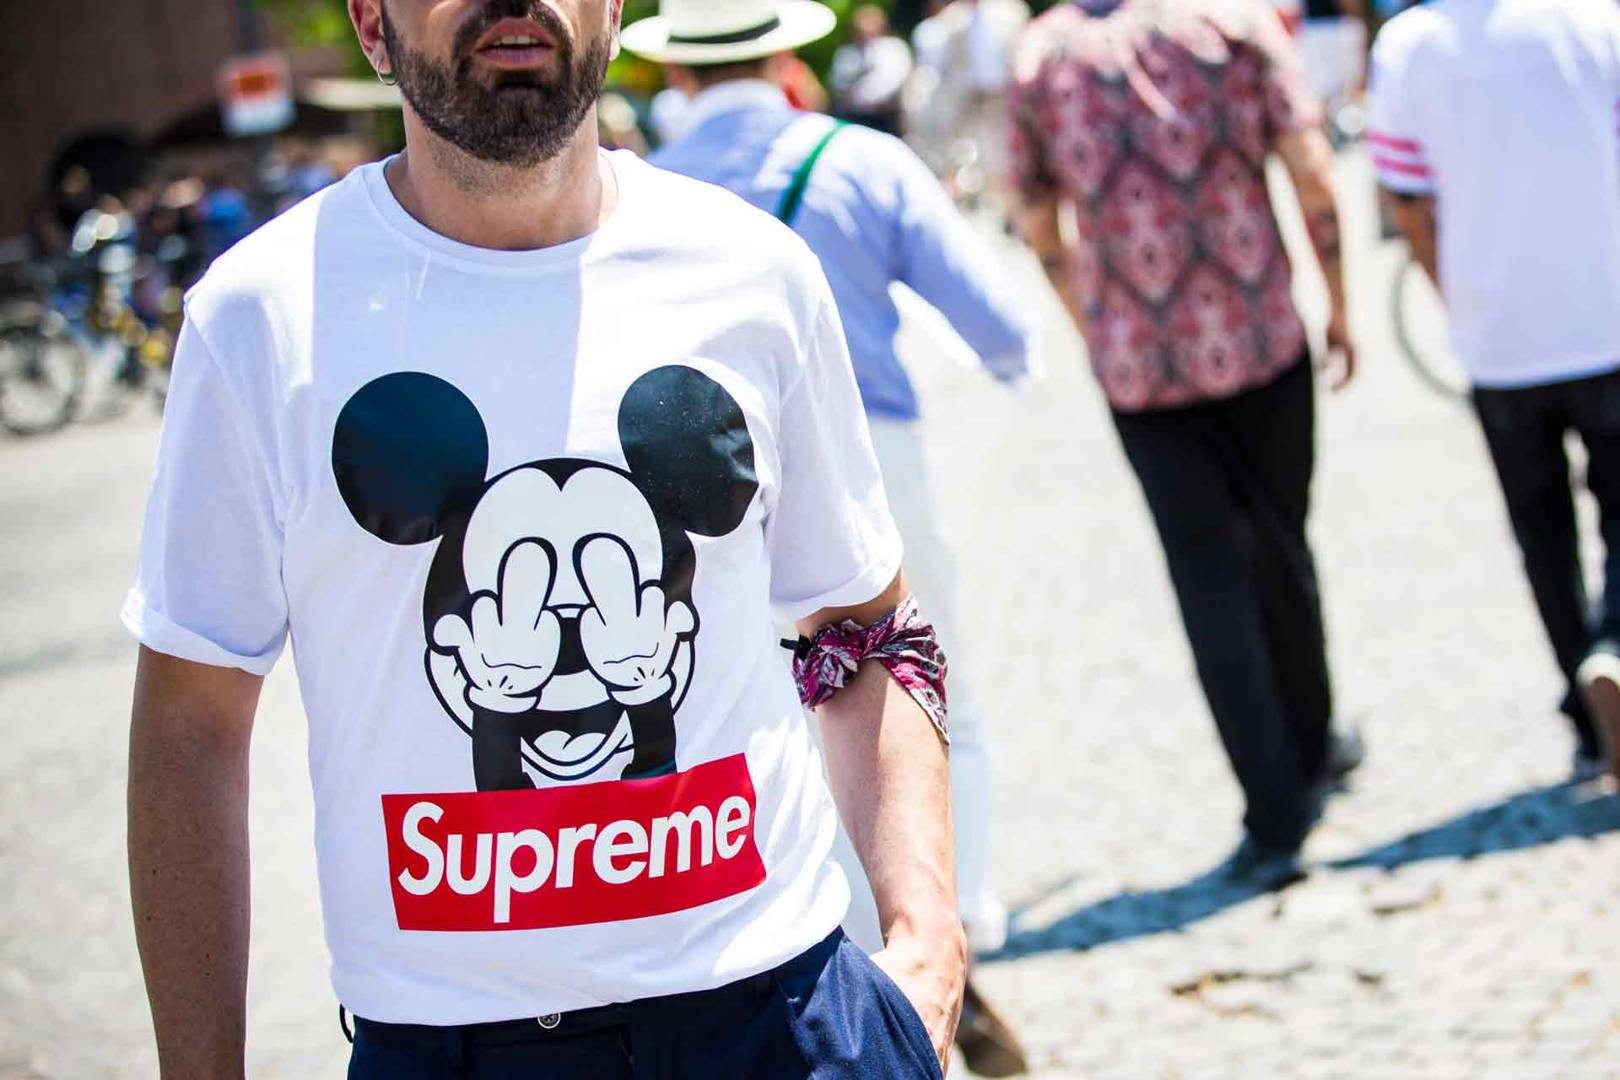 403bbecb What the fashion industry thinks of Supreme | British GQ